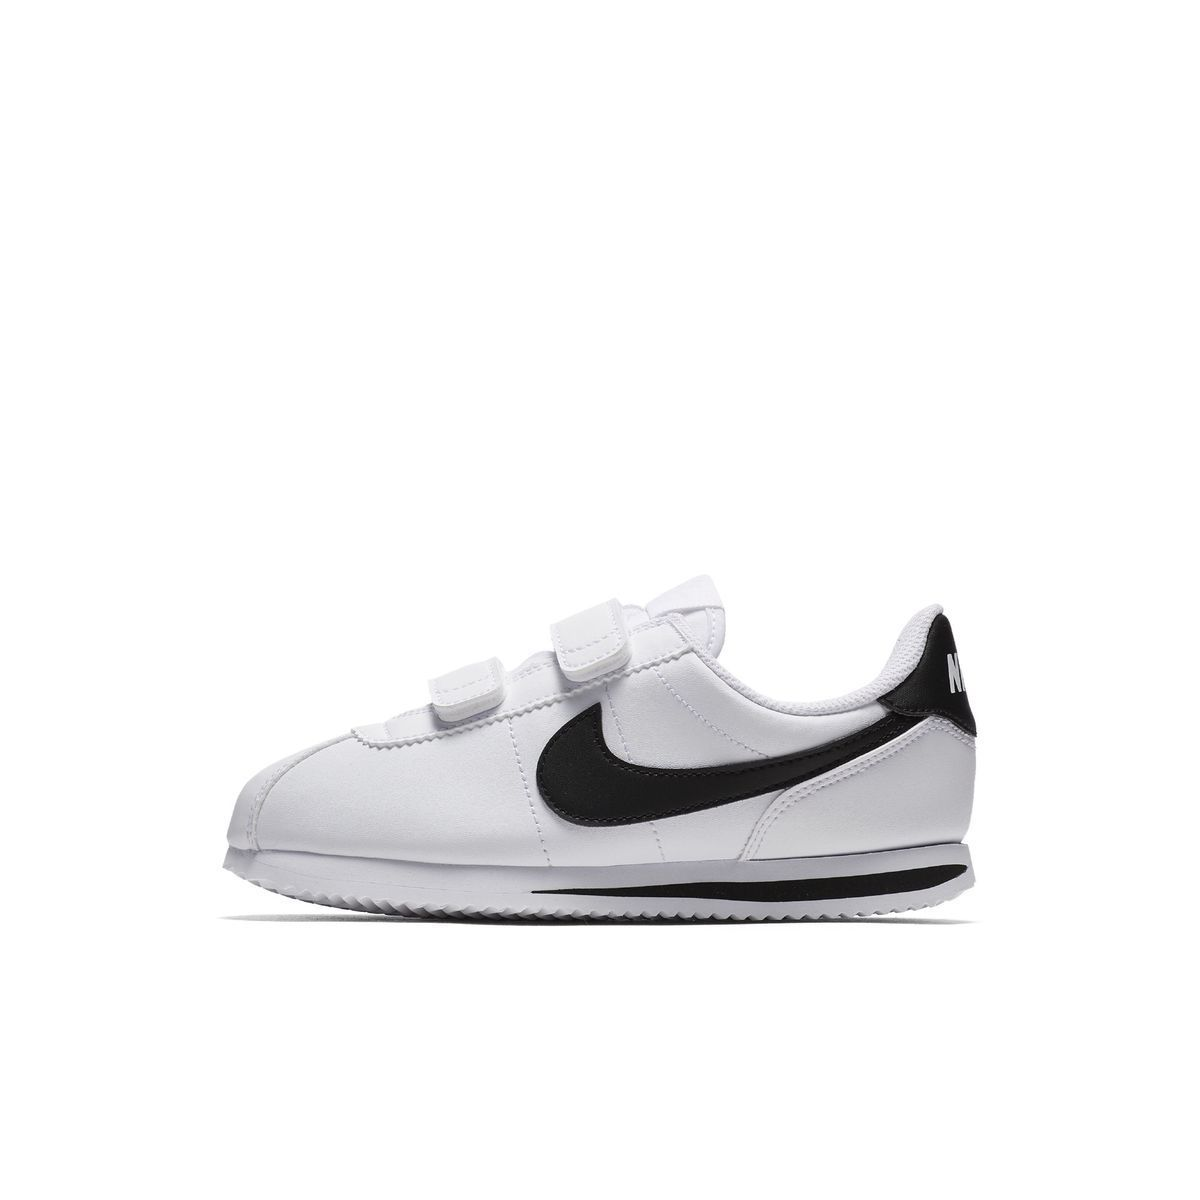 US $47.73 63% OFF|NIKE Kids Official Cortez Basic SL Toddler Kids Running Shoes Comfortable Sneakers For Boys And Girls #904767 in Sneakers from